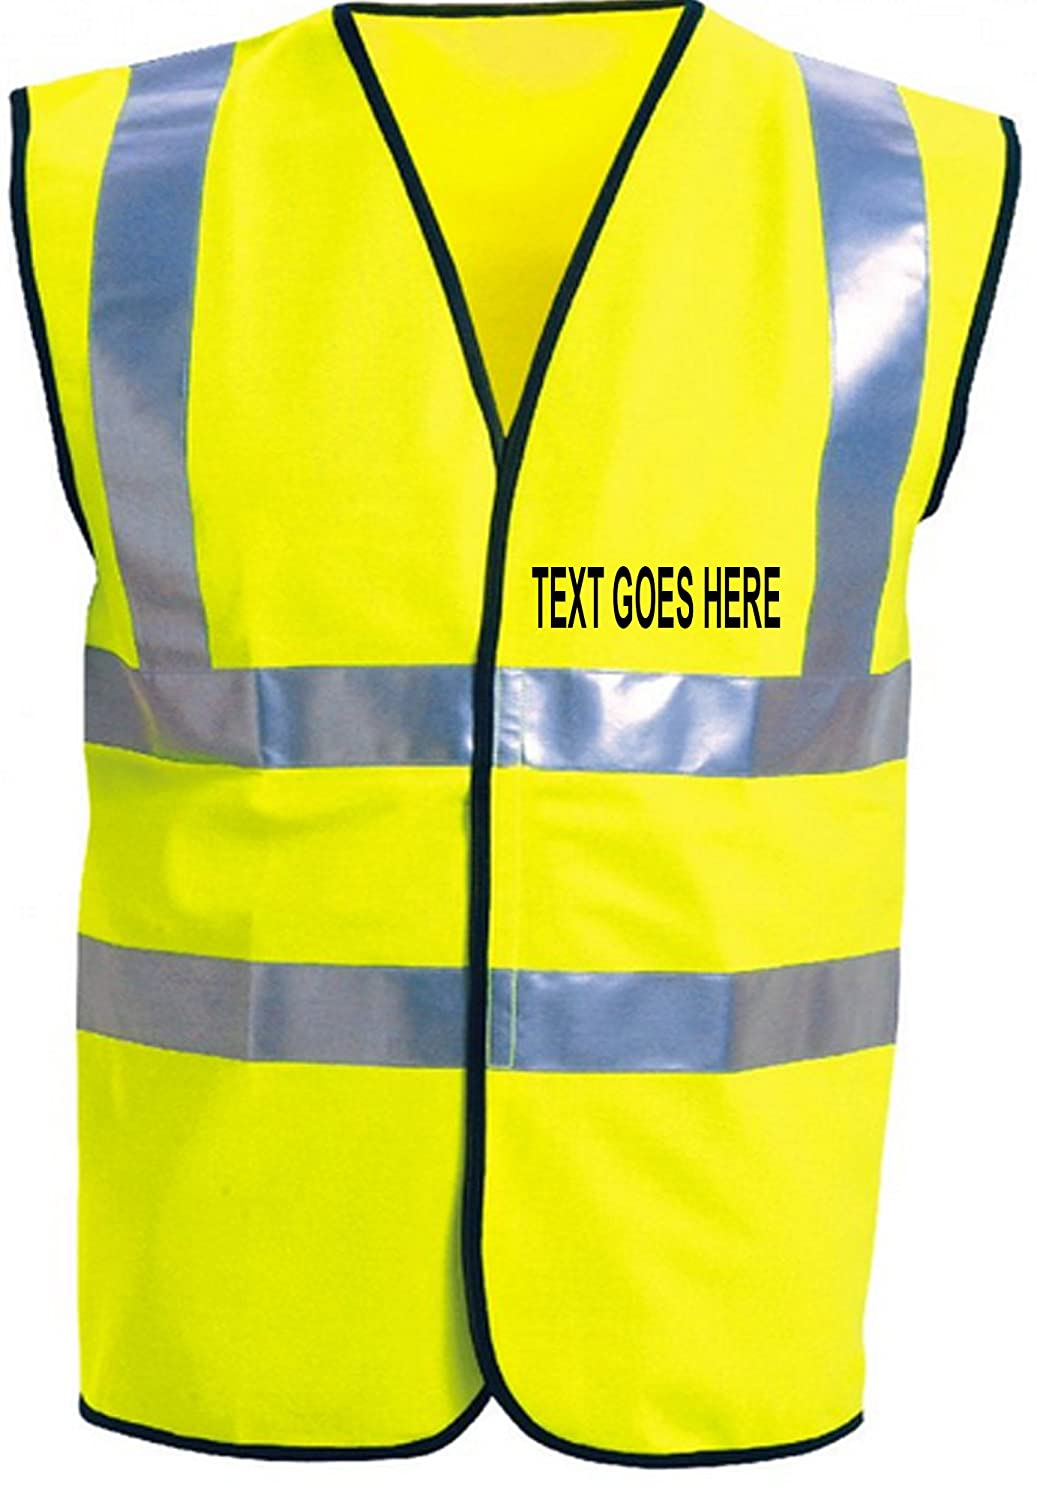 PERSONALISED HIGH VISIBILITY ADULTS WAISTCOAT ADD YOUR OWN TEXT